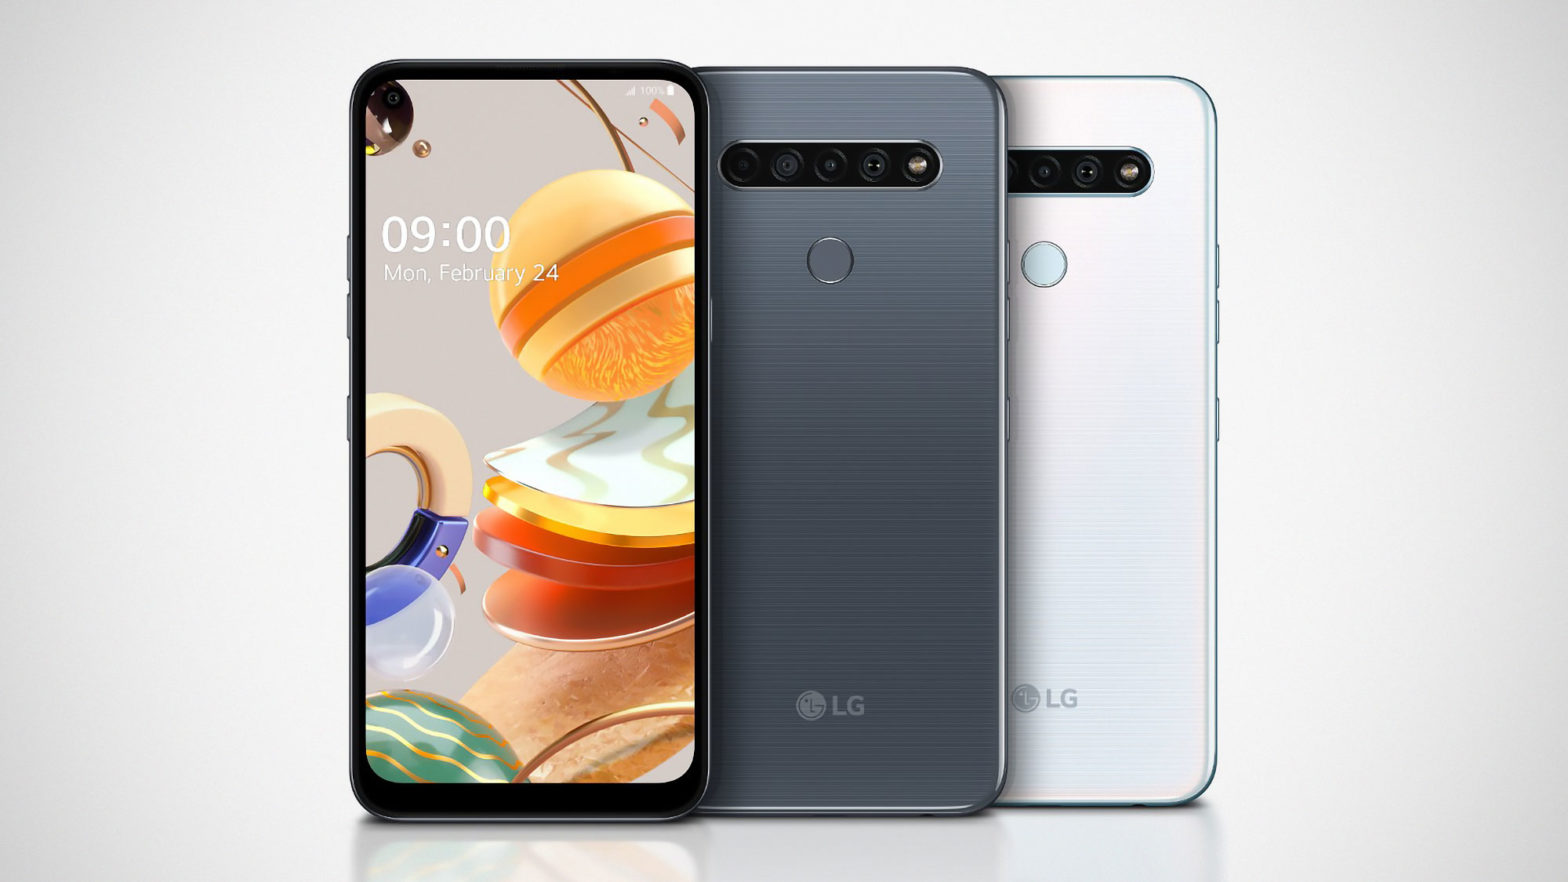 2020 LG K Series Smartphone Announced